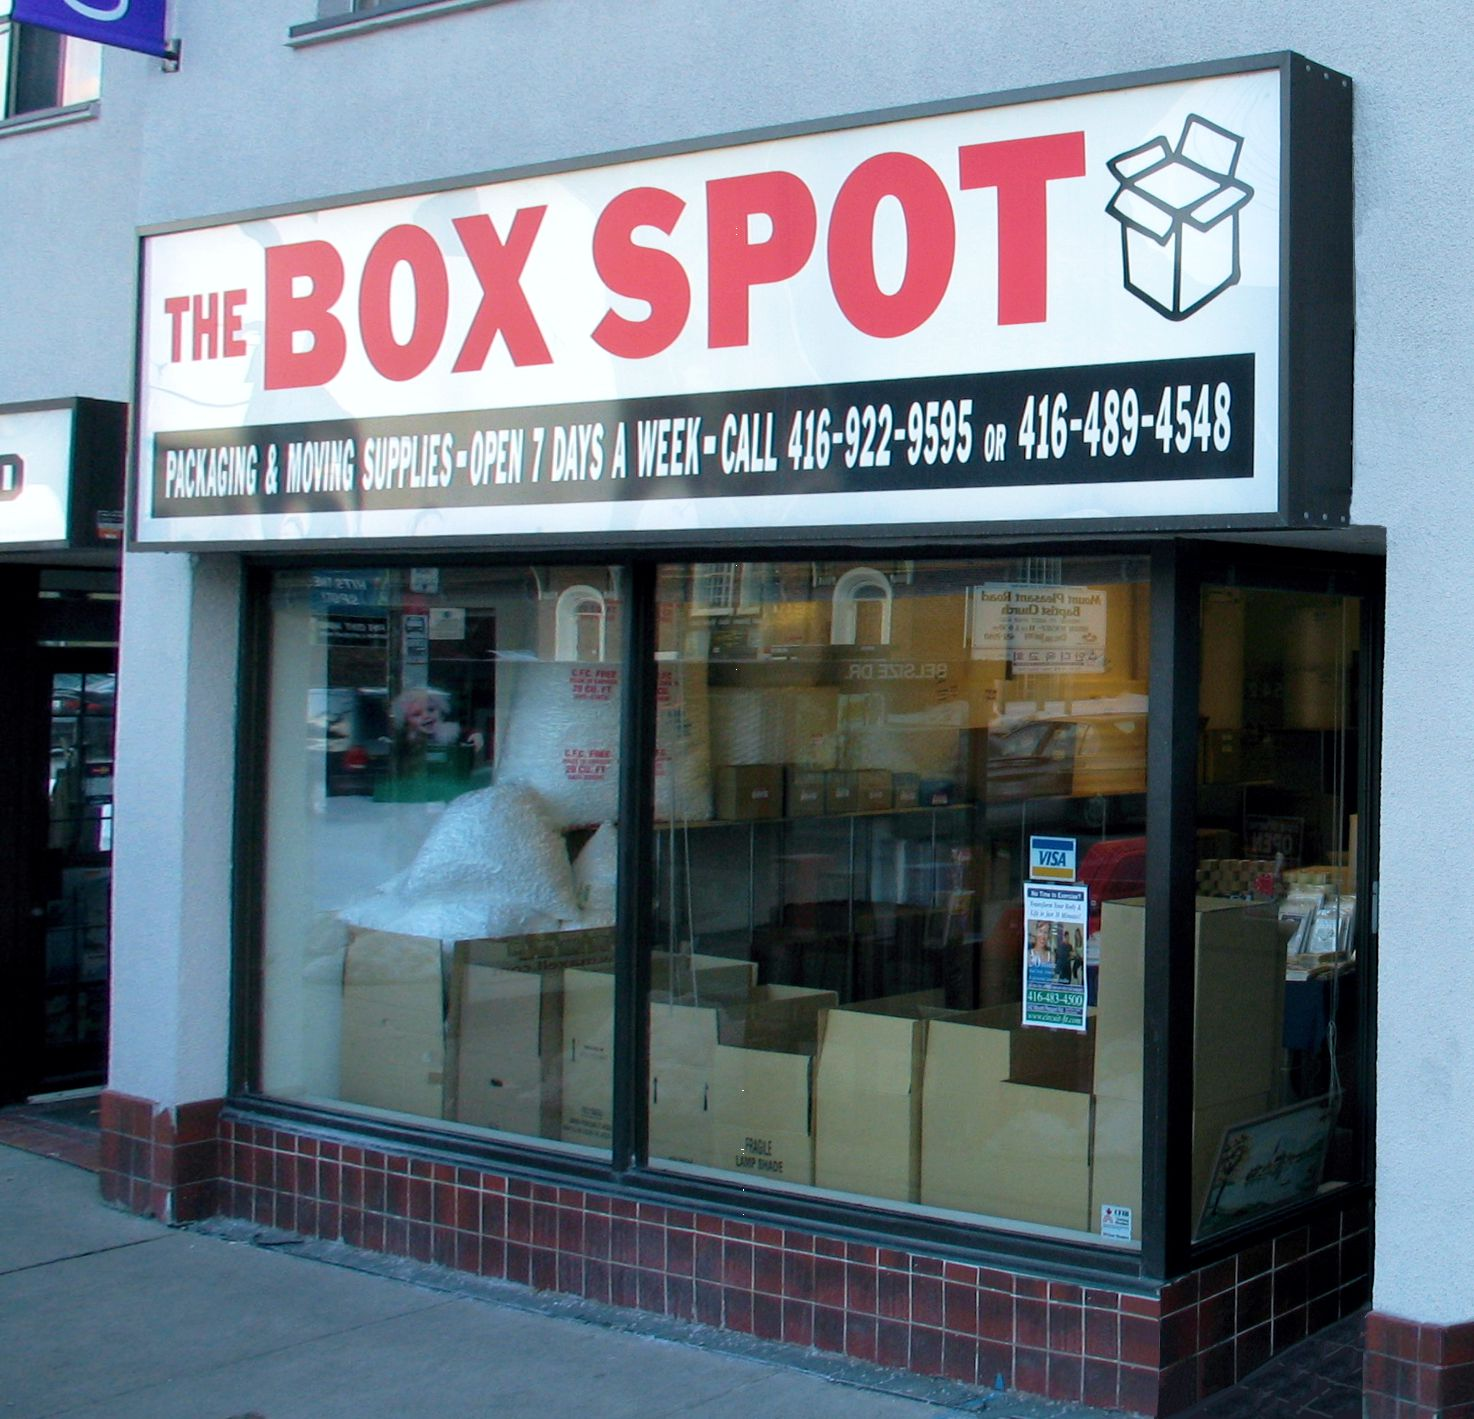 The Box Spot at 542 Mt. Pleasant Road